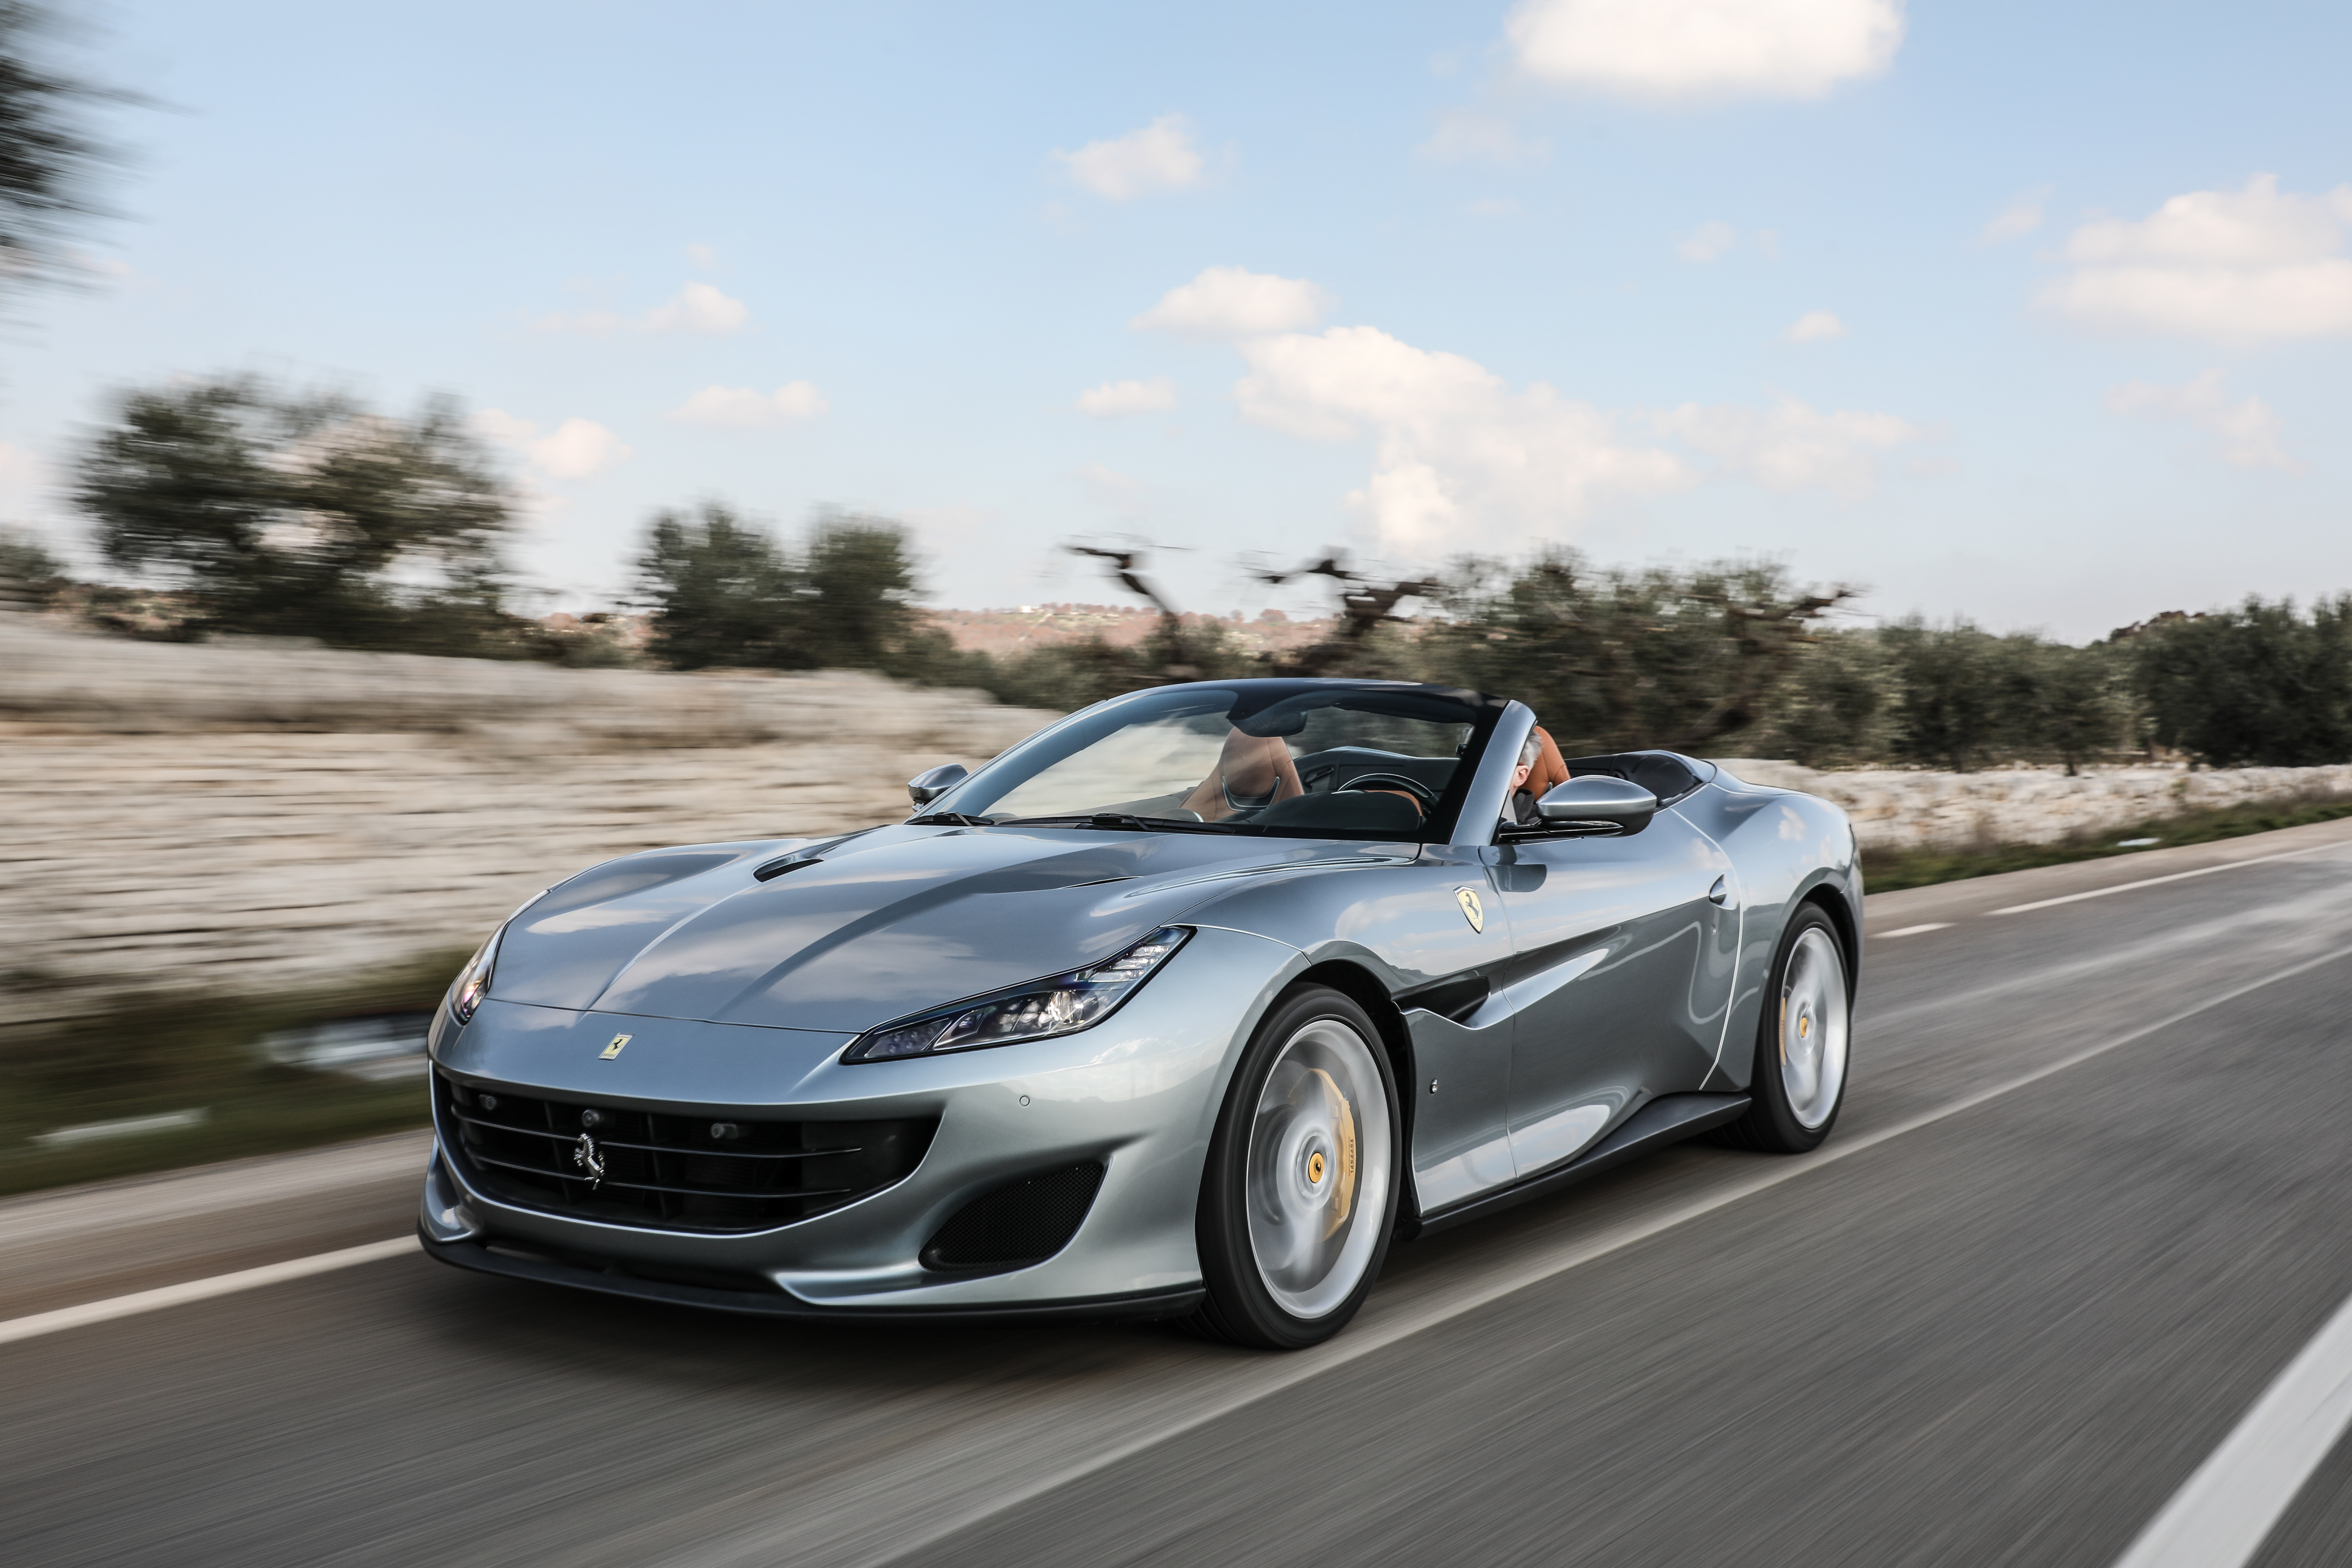 Everyday Supercar The Engineer Drives The Ferrari Portofino The Engineer The Engineer